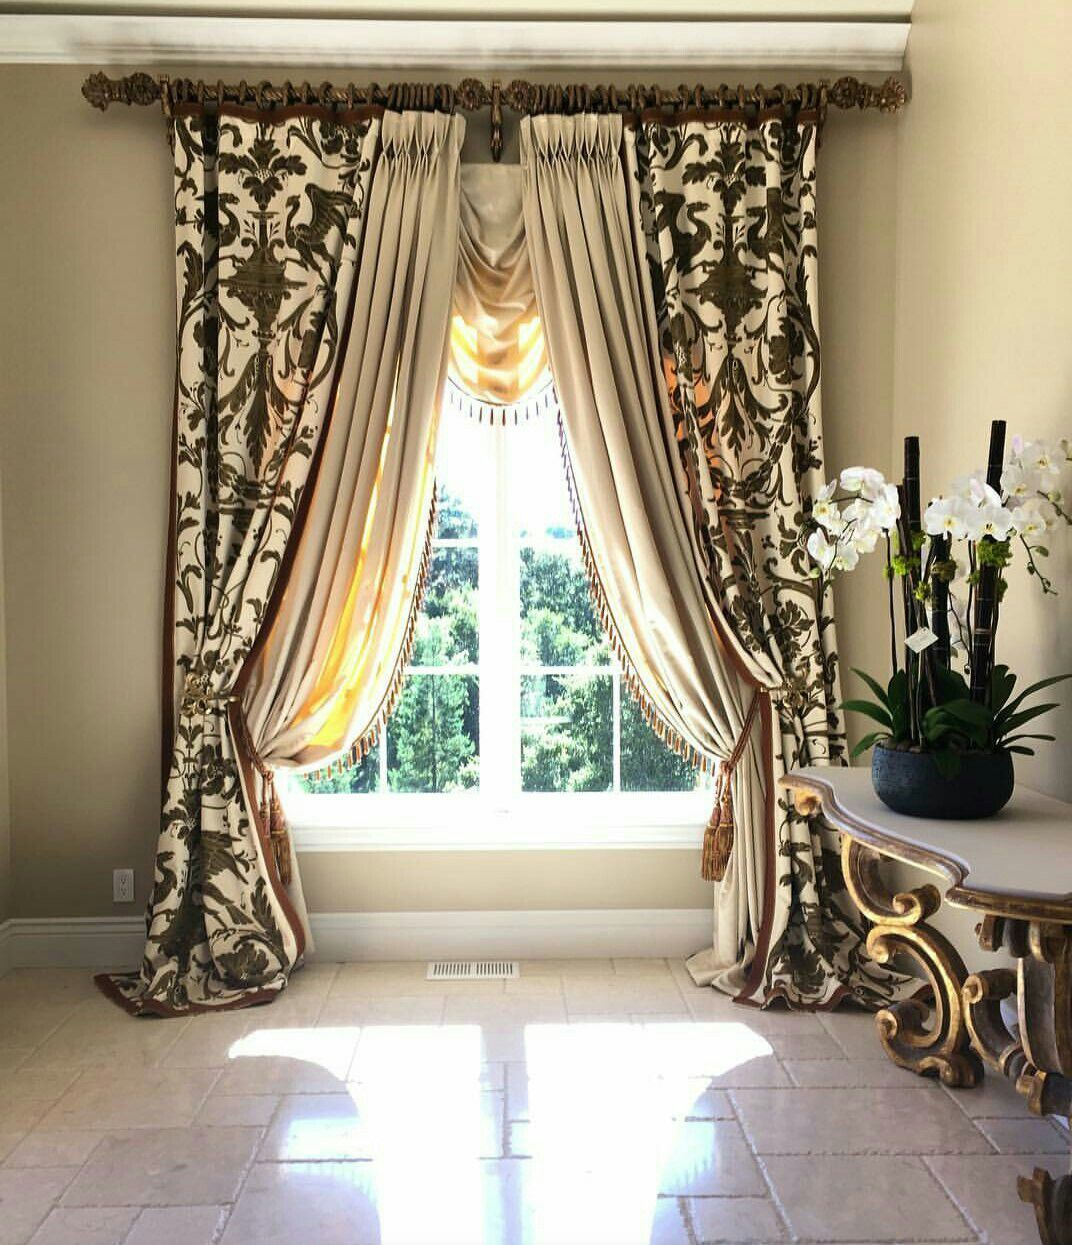 New Bedroom Bed Volleyball Bedroom Decorating Ideas Rustic Bedroom Decor Diy Bedroom Blinds Ideas: Bedroom Must Have! Custom Draperies Shipping To You